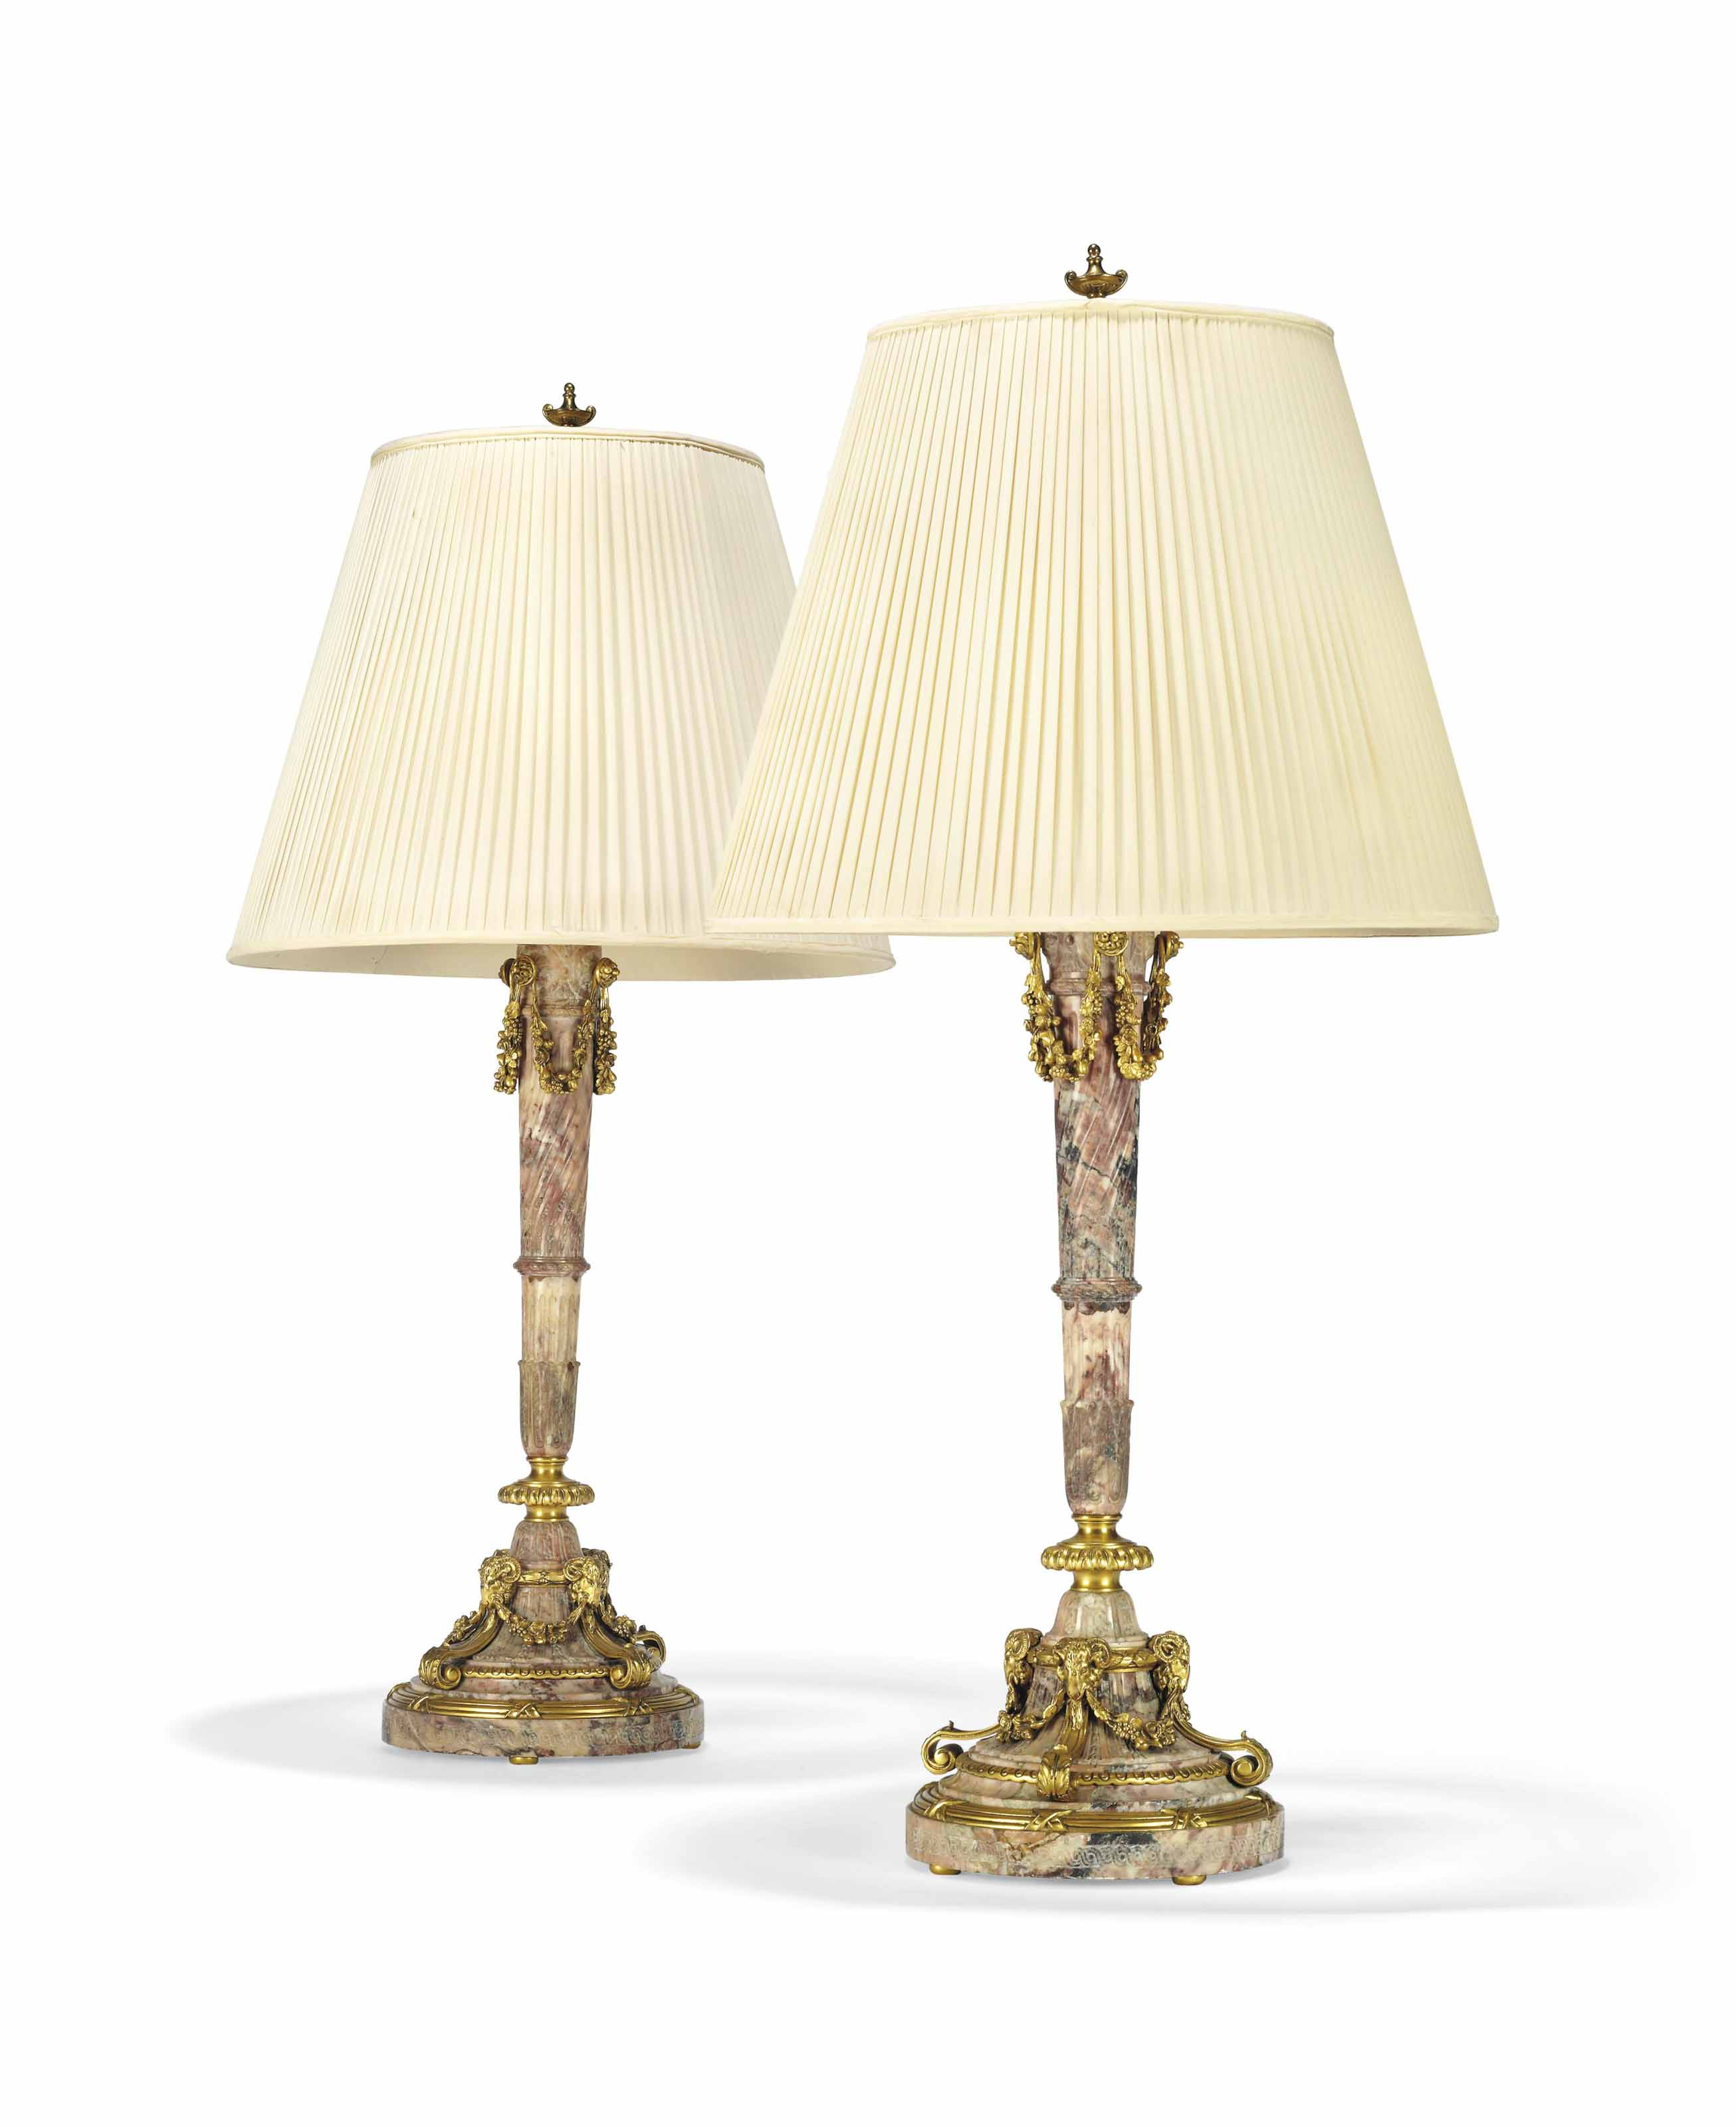 A PAIR OF AMERICAN GILT-BRONZE AND MABLE TABLE LAMPS